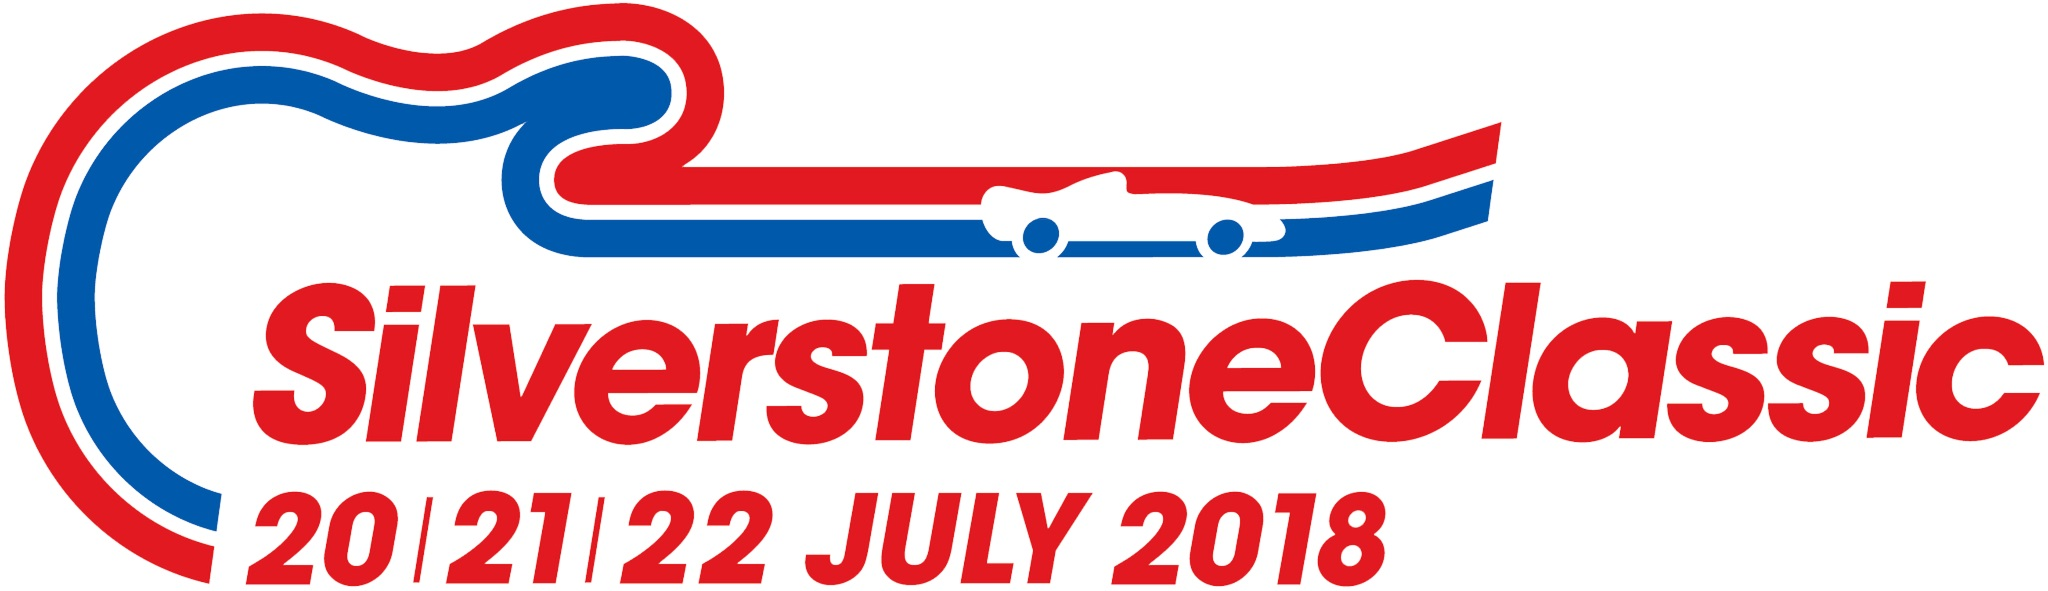 Super Early Bird Display Packages for Silverstone Classic cover